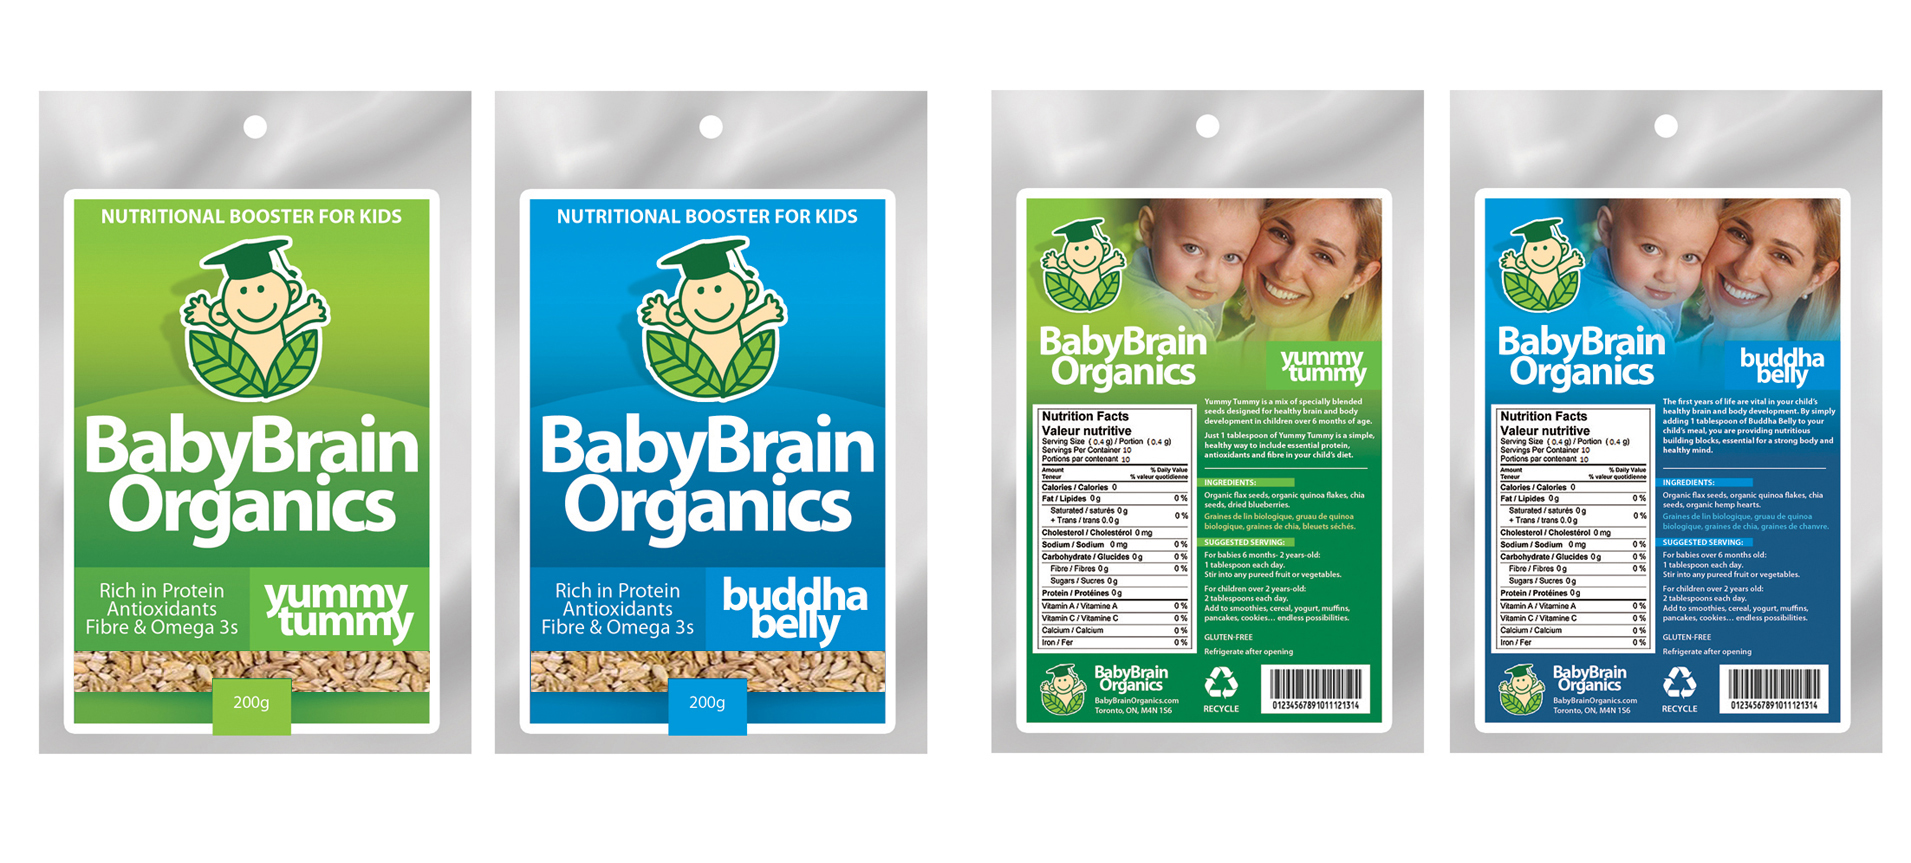 Packaging Design by Sherwin Soy - Entry No. 85 in the Packaging Design Contest Baby Brain Organics Packaging Design.